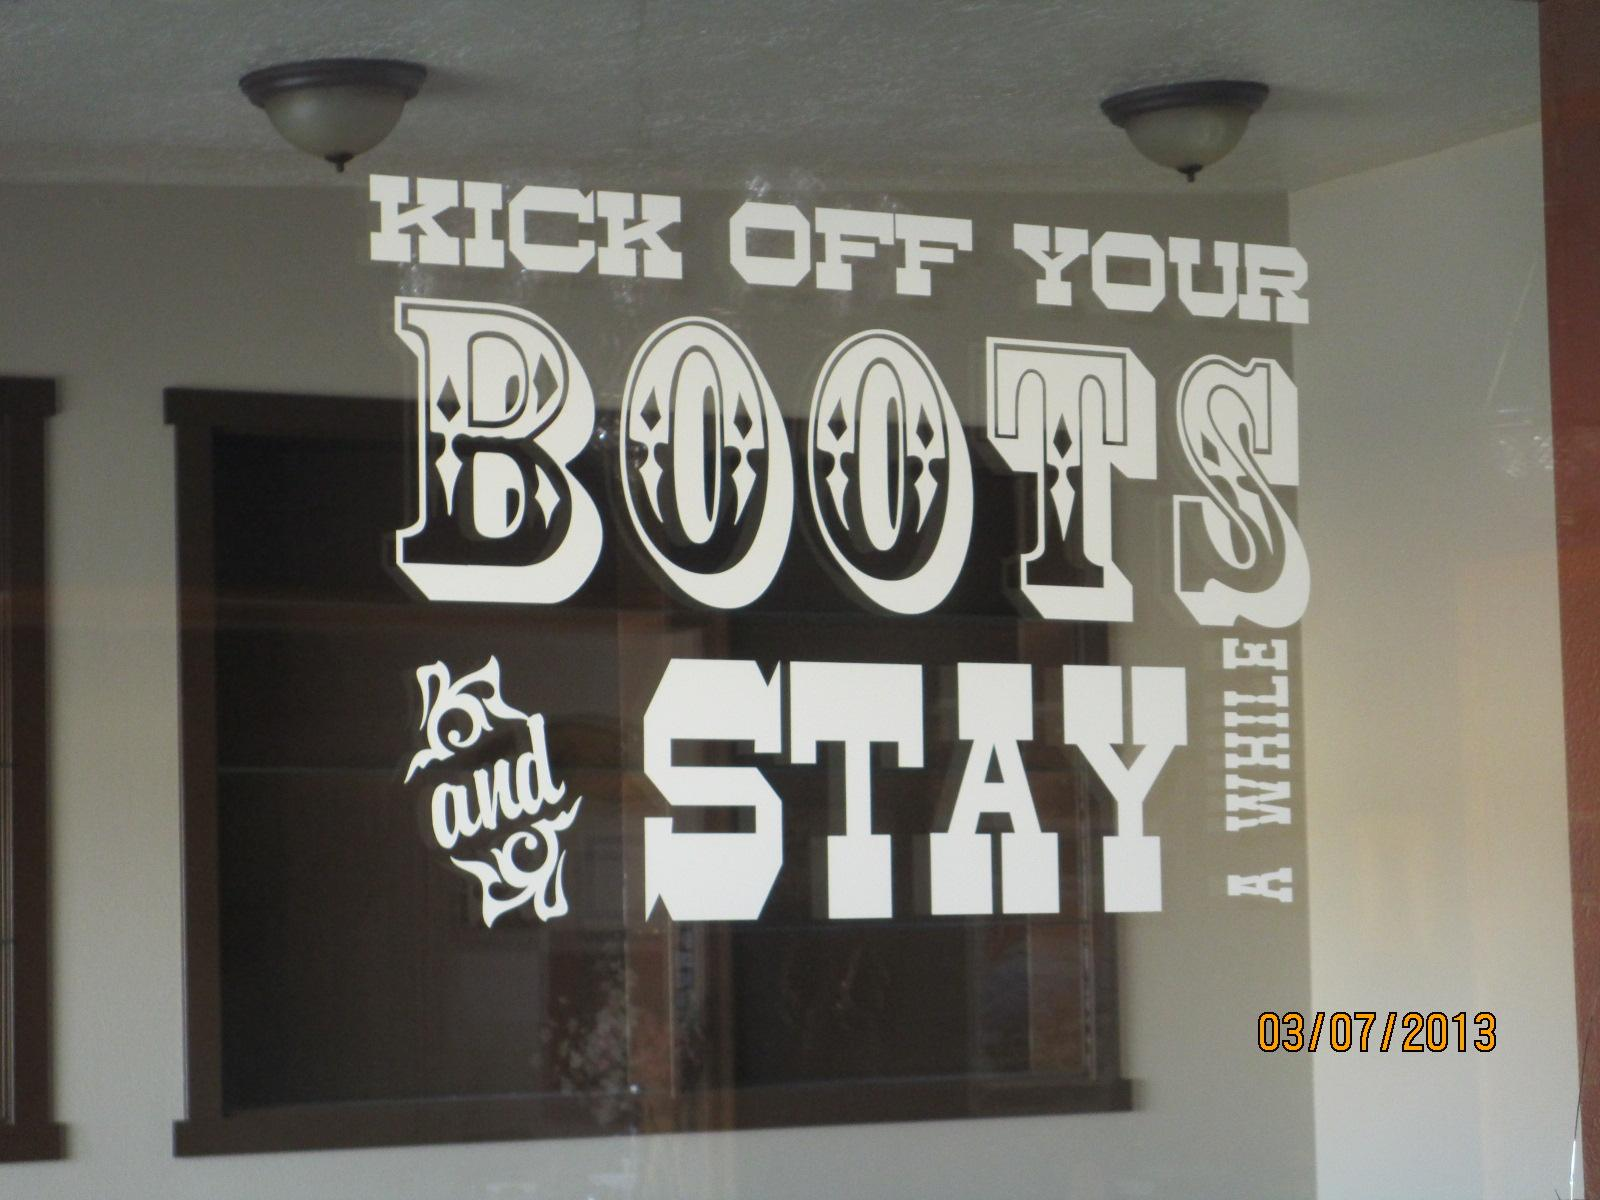 Kick Off Your Boots and Stay Awhile! Broken Spur Inn & Steakhouse Torrey (435)425-3775